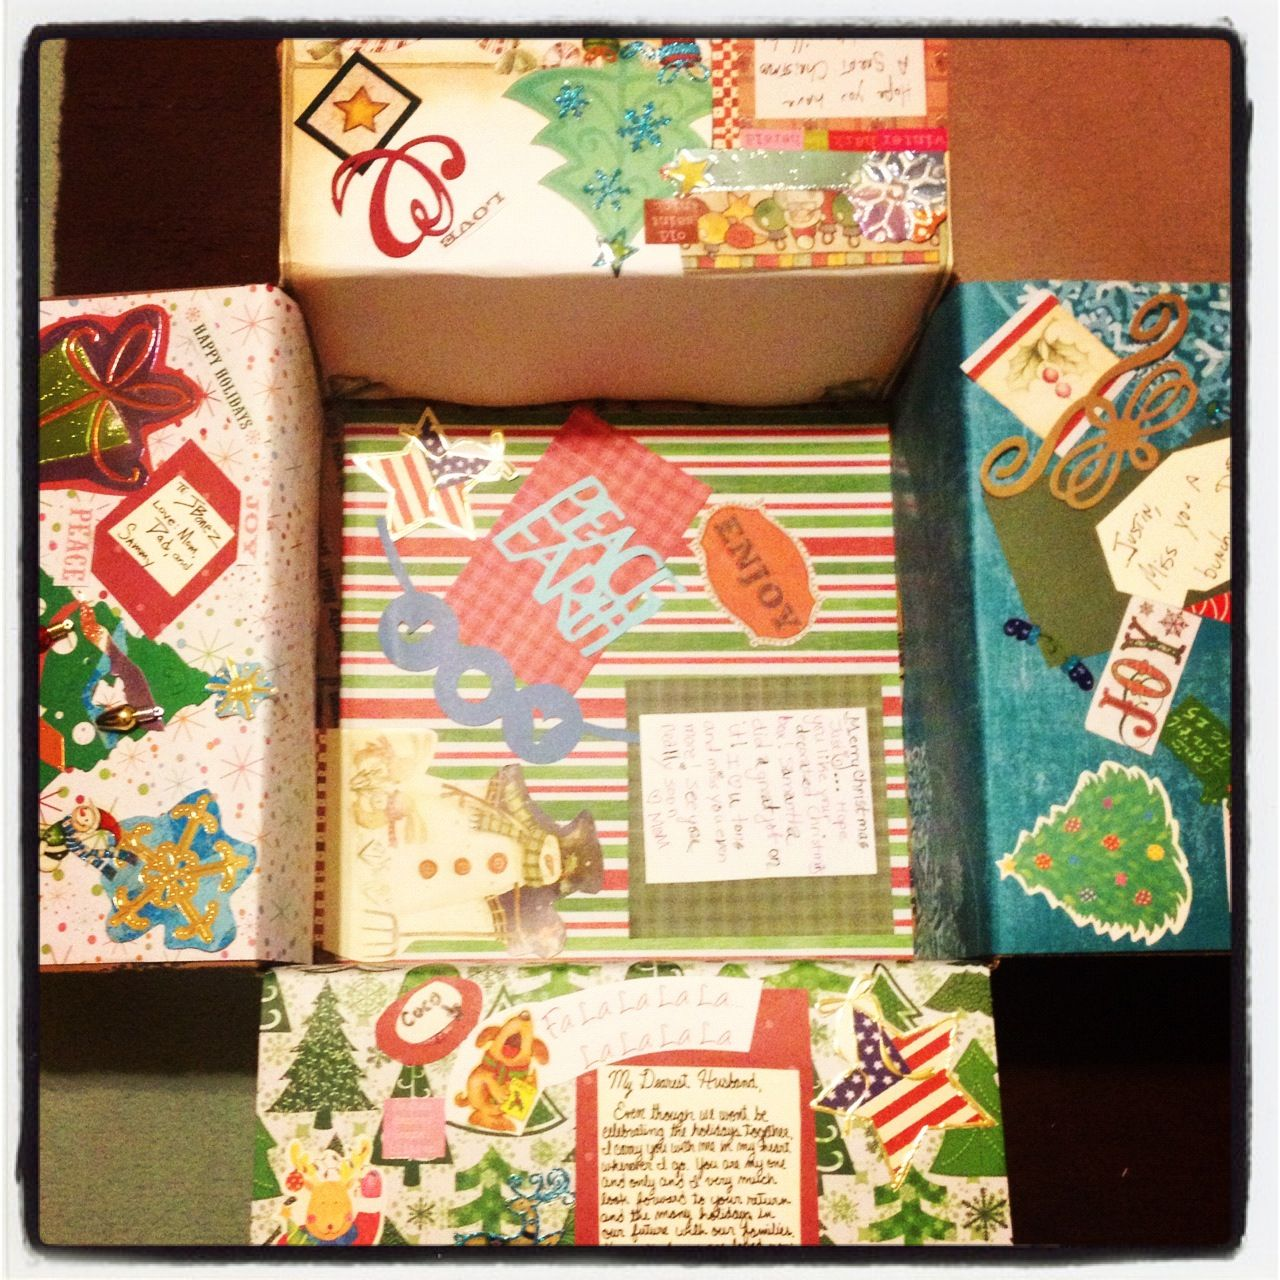 Christmas Deployment Care Package Decorated Box For